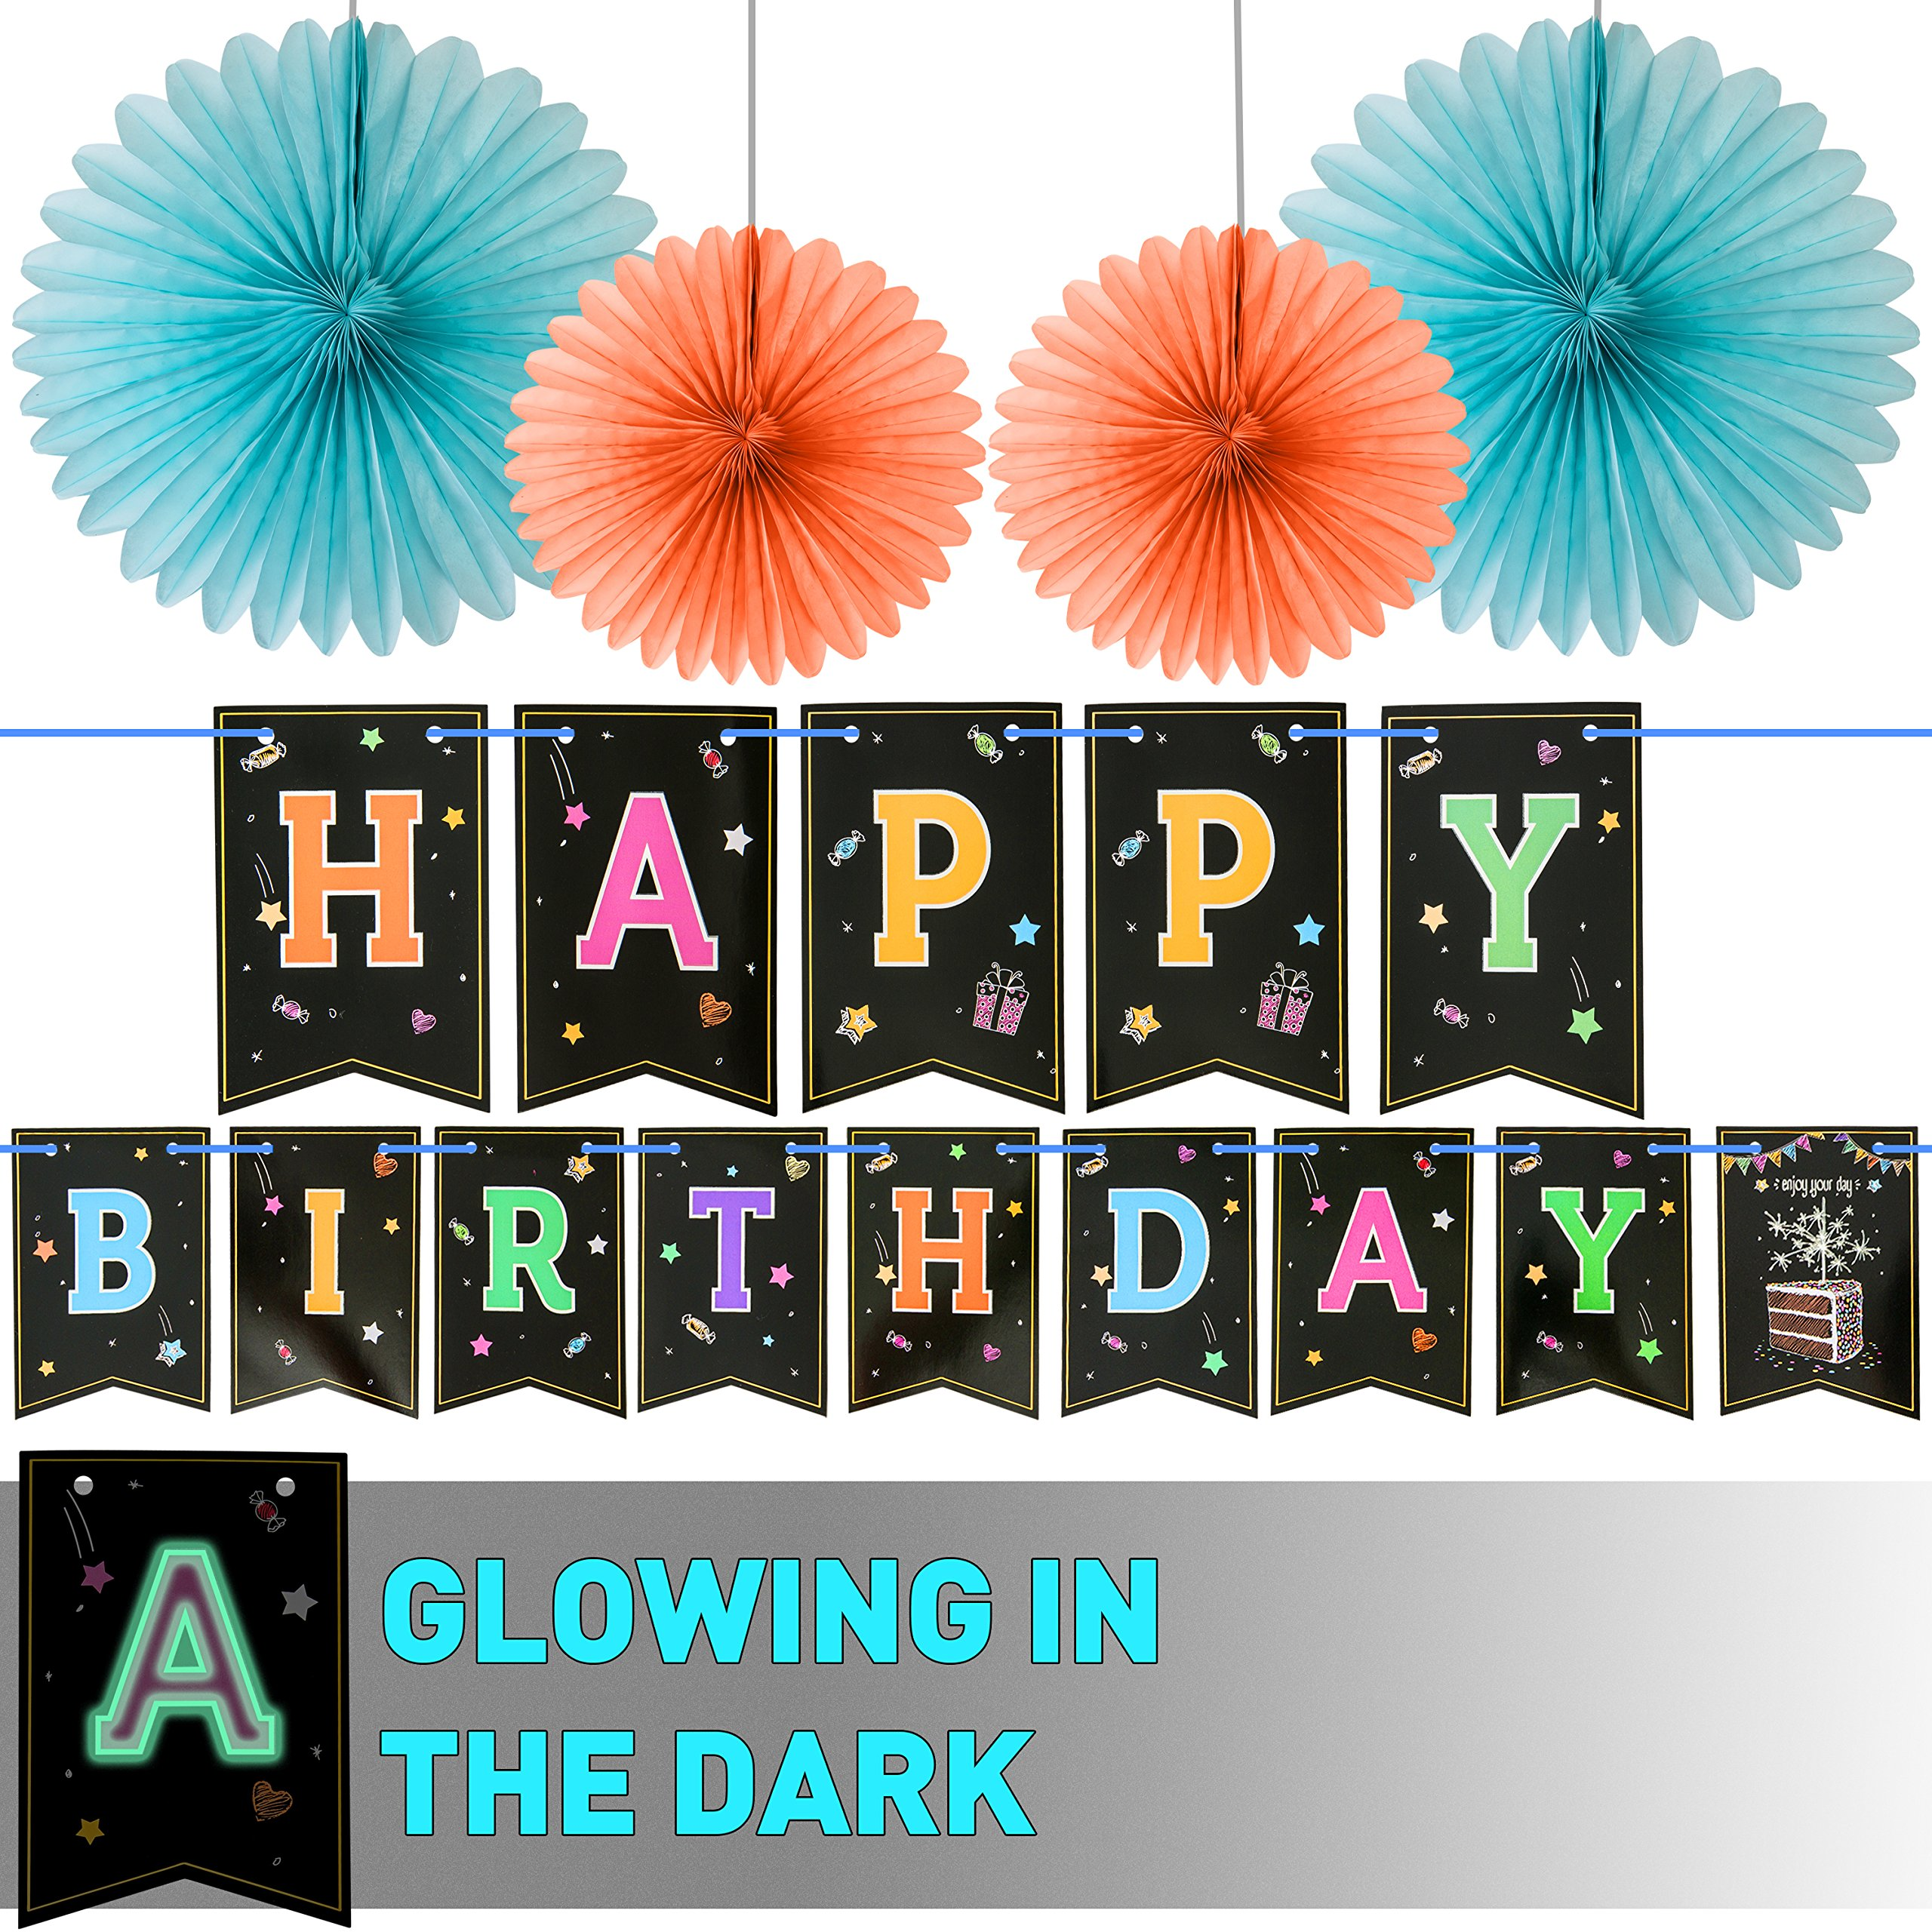 LIDERSTAR Happy Birthday Banner With 4 Fans,Glow In The Dark UV Party Decoration .Happy Birthday Glowing bunting Carnival/Kids Party Supplies Favors Colors Hanging Decoration